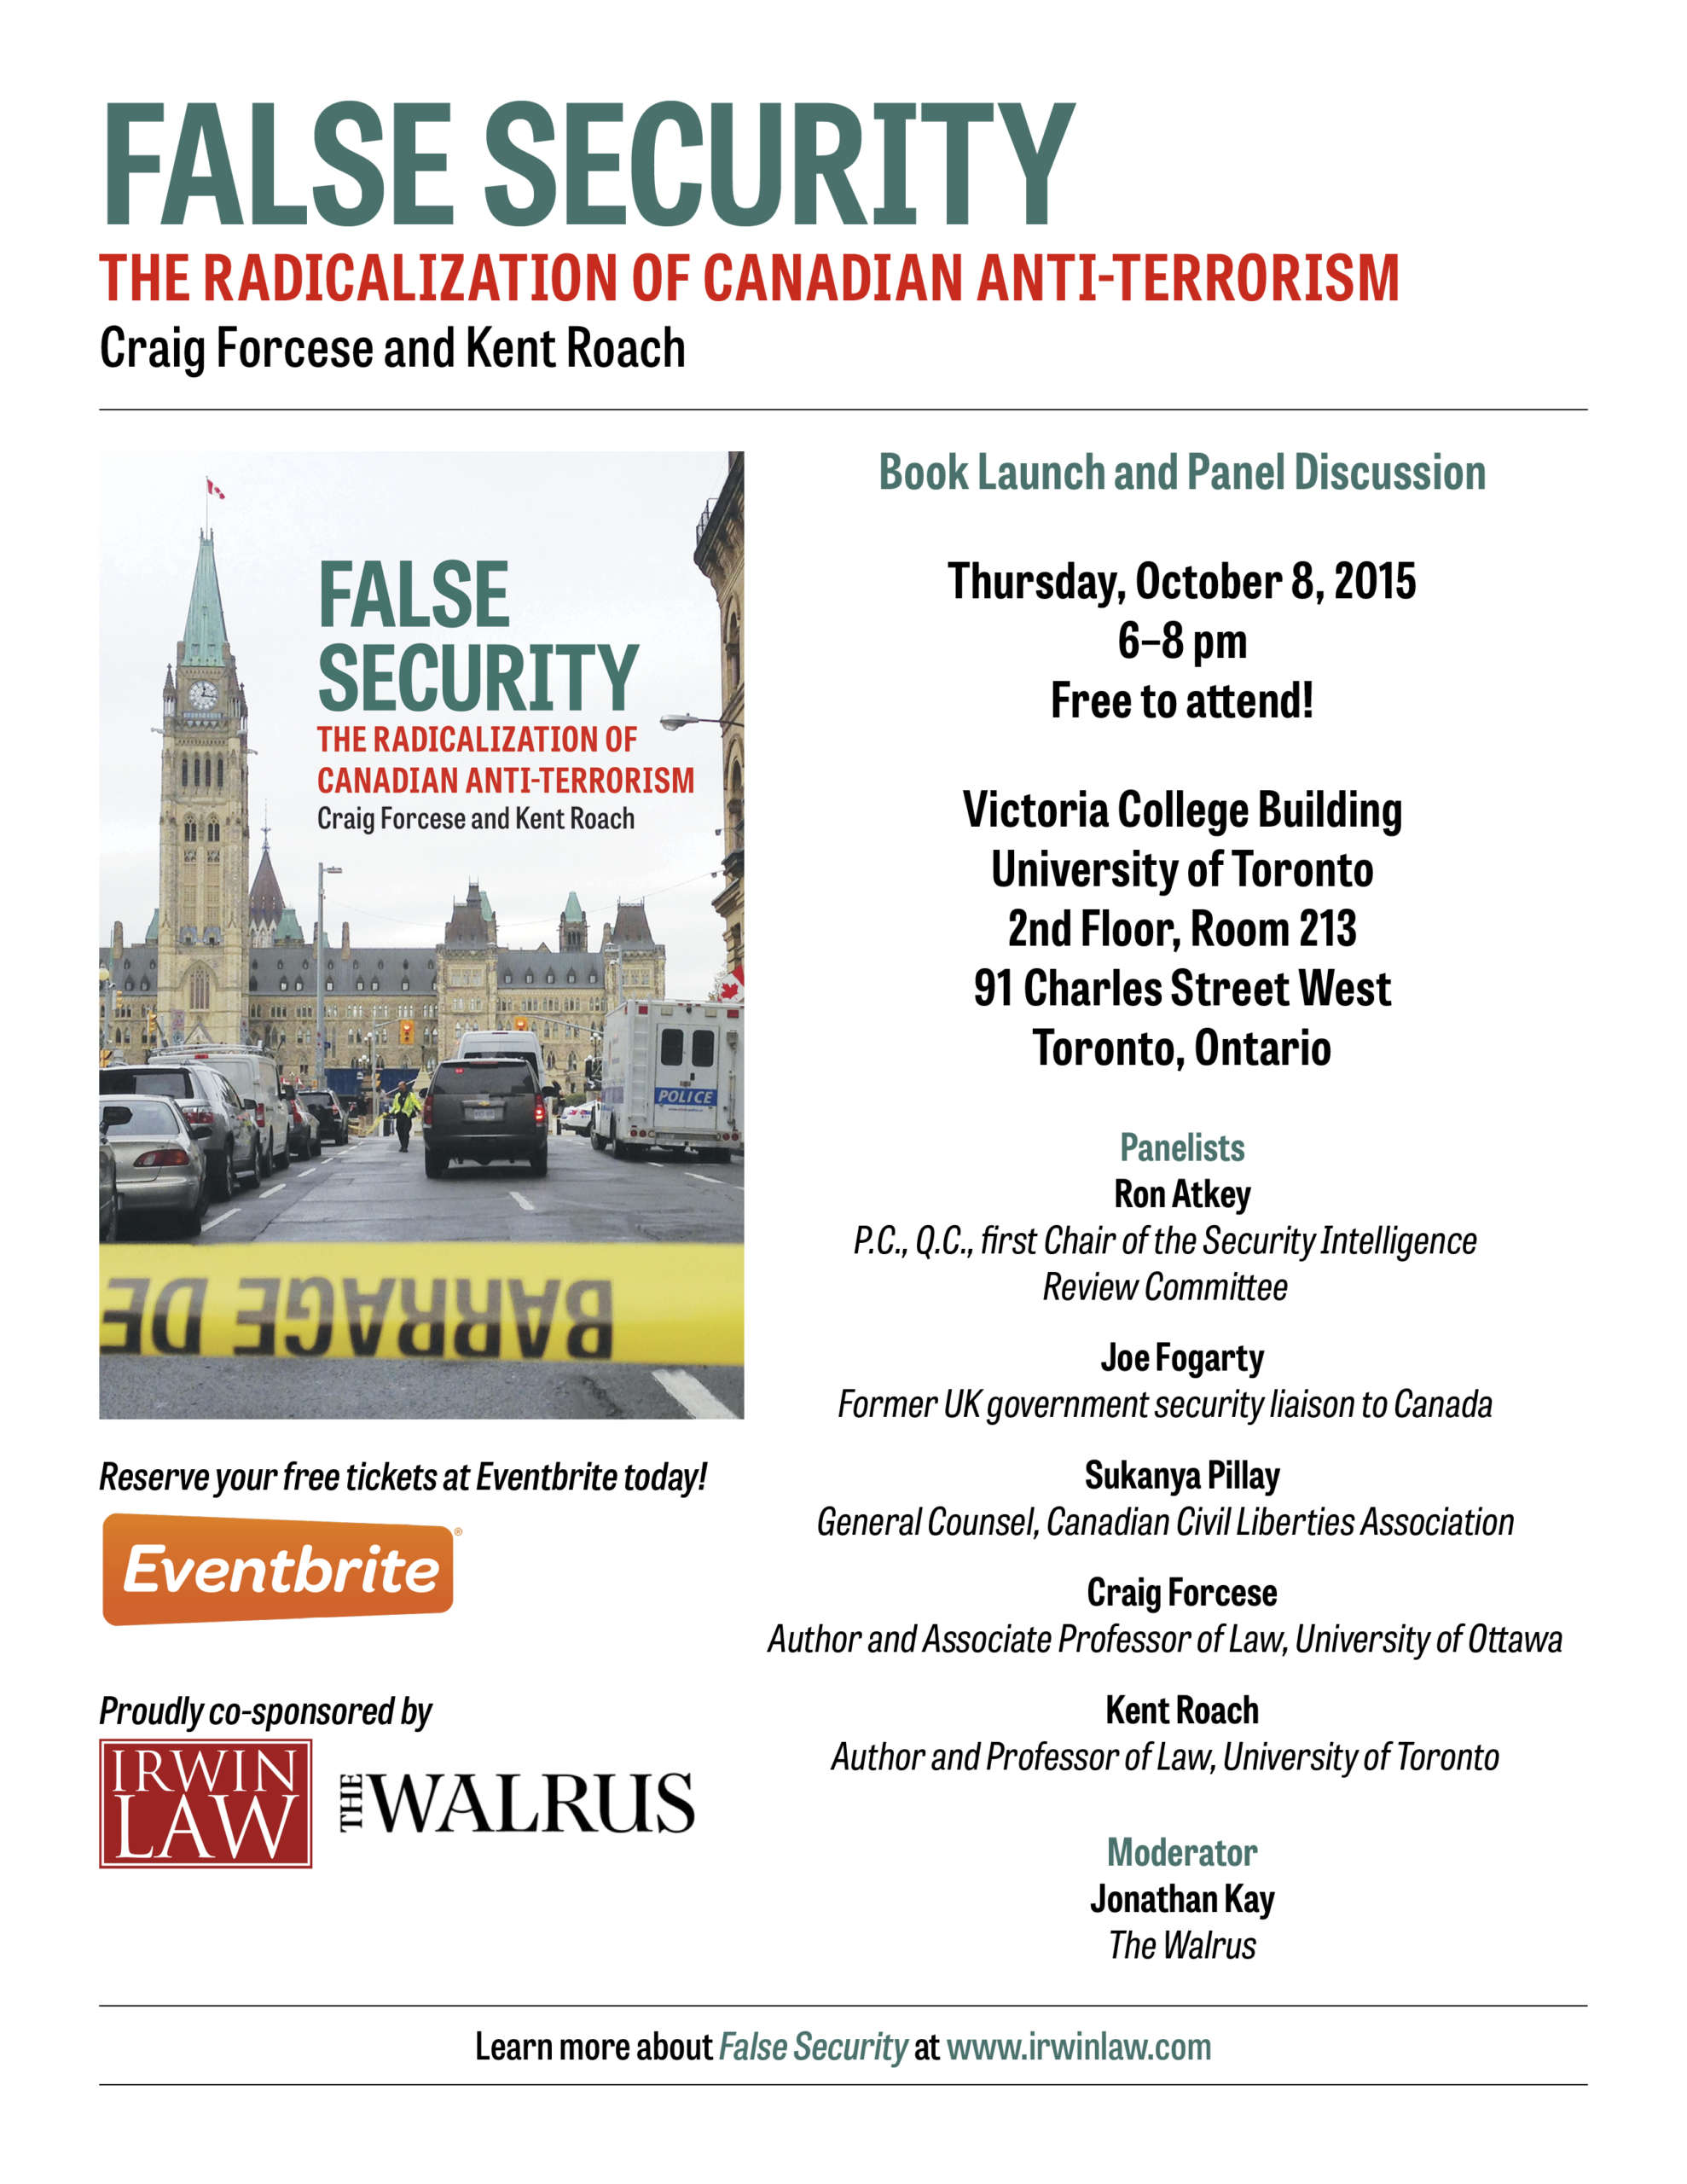 Poster showing details of False Security book launch and panel discussion.